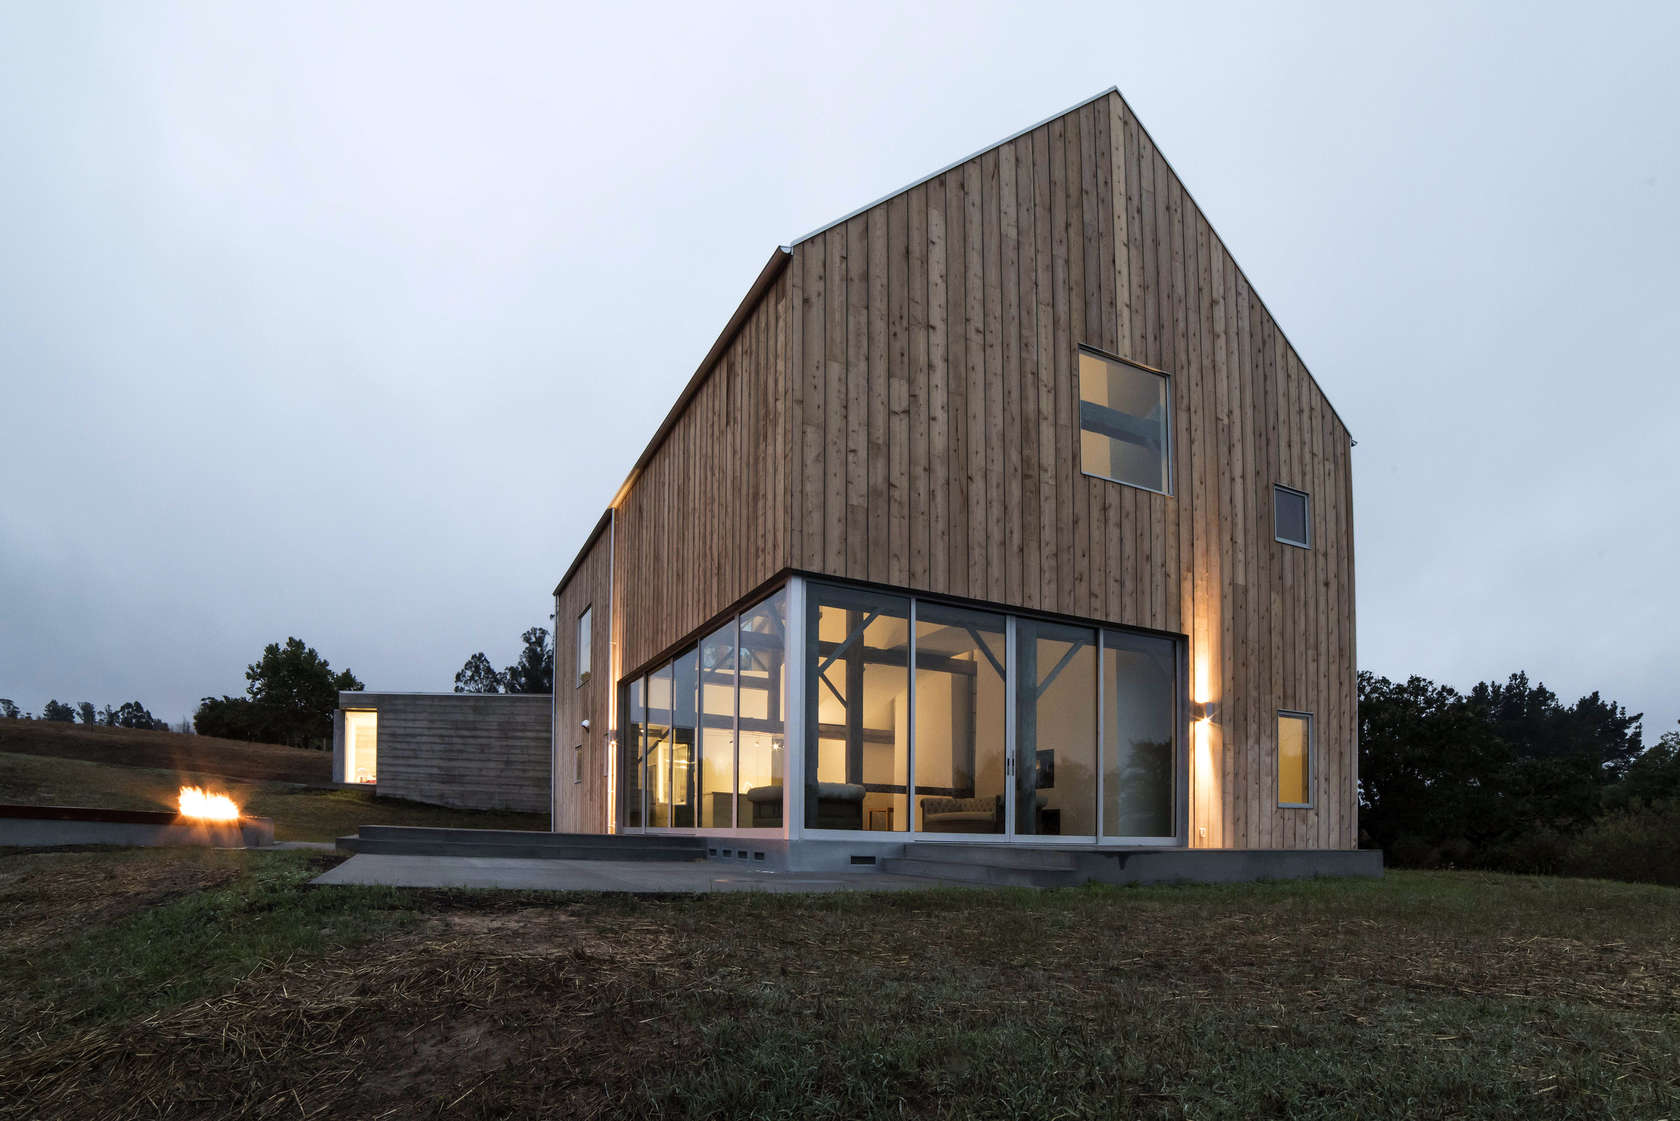 Wood Home Designs: Wooden Houses: A Series Of Residential Buildings That